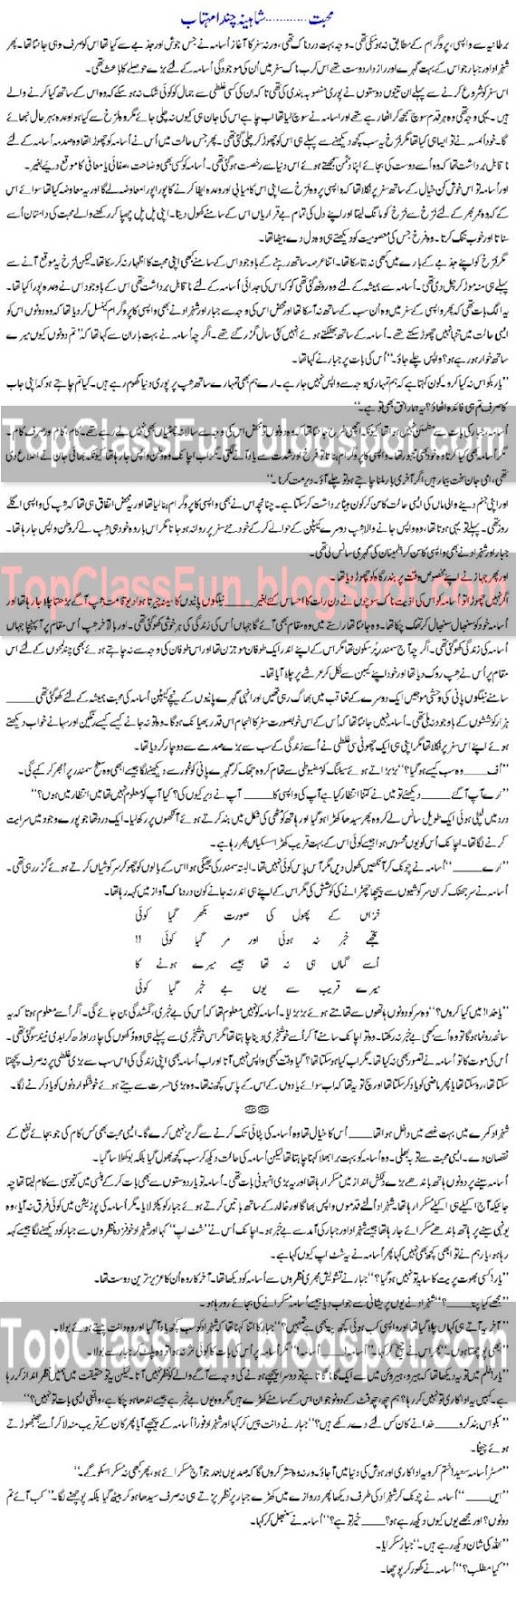 Romantic Urdu Novel - MOHABBAT &#8211; By Shahina Chanda Mehtab Page 1